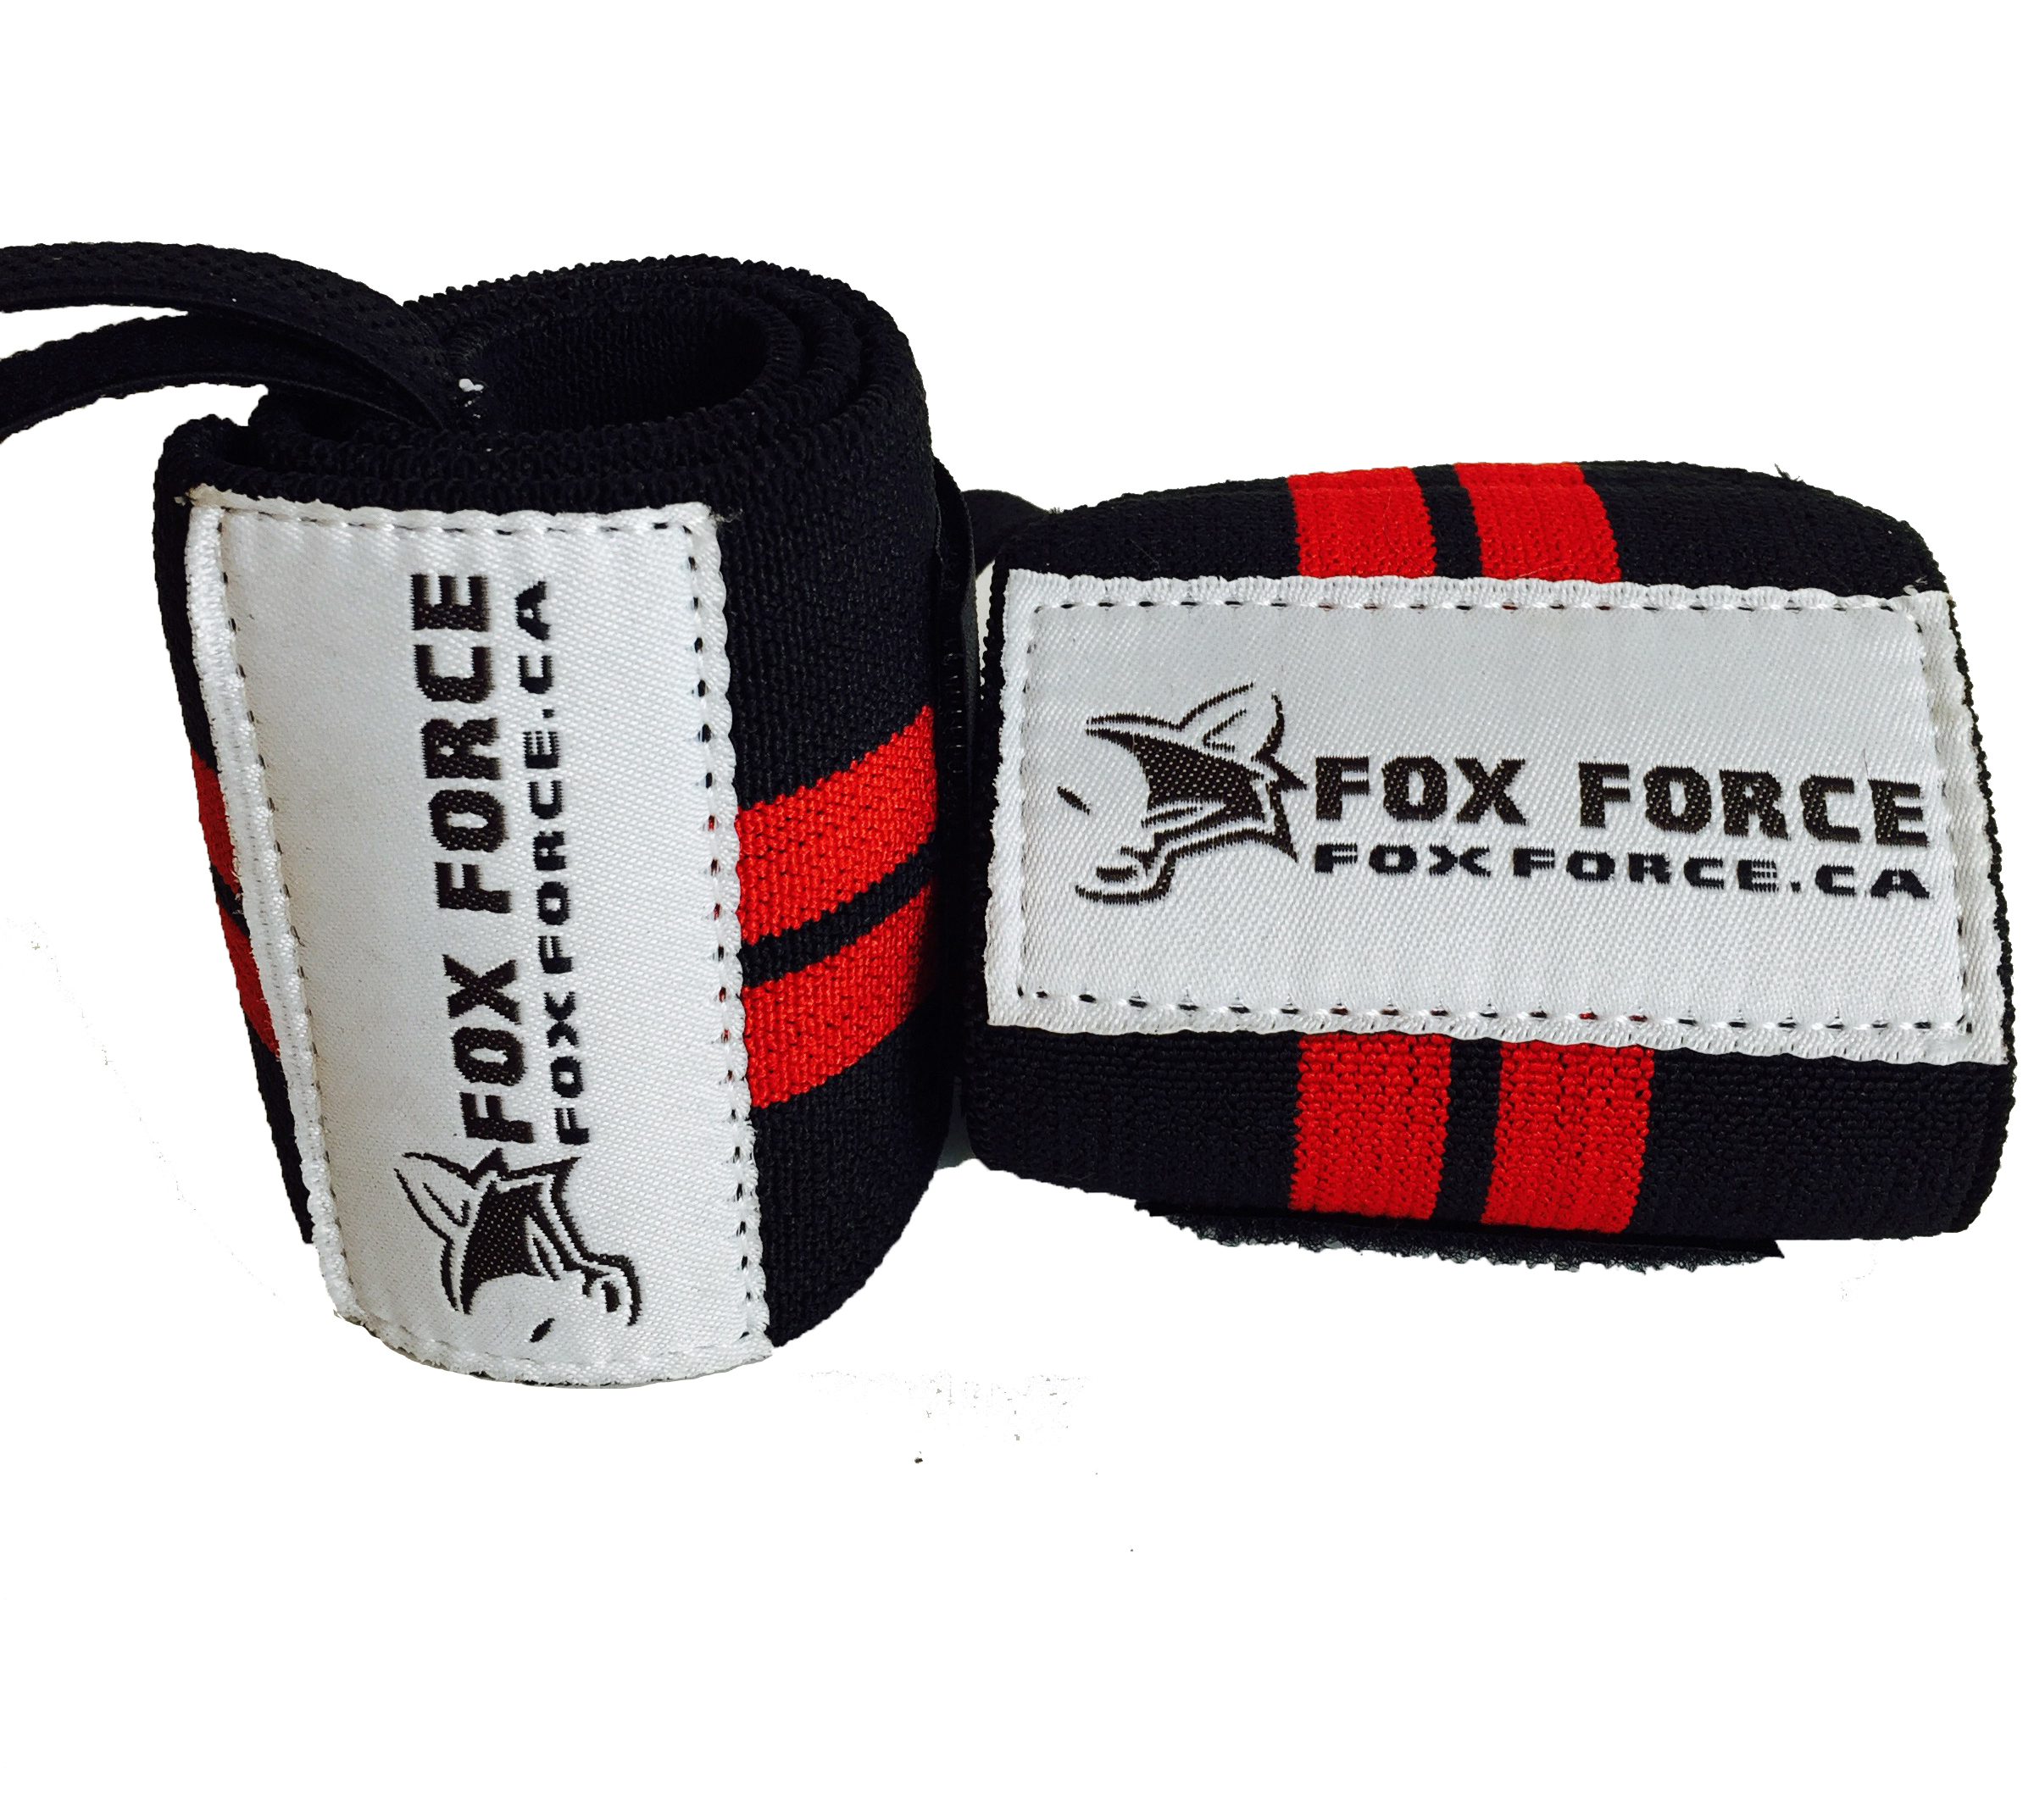 Weight Lifting Wrist Wraps by #foxforce